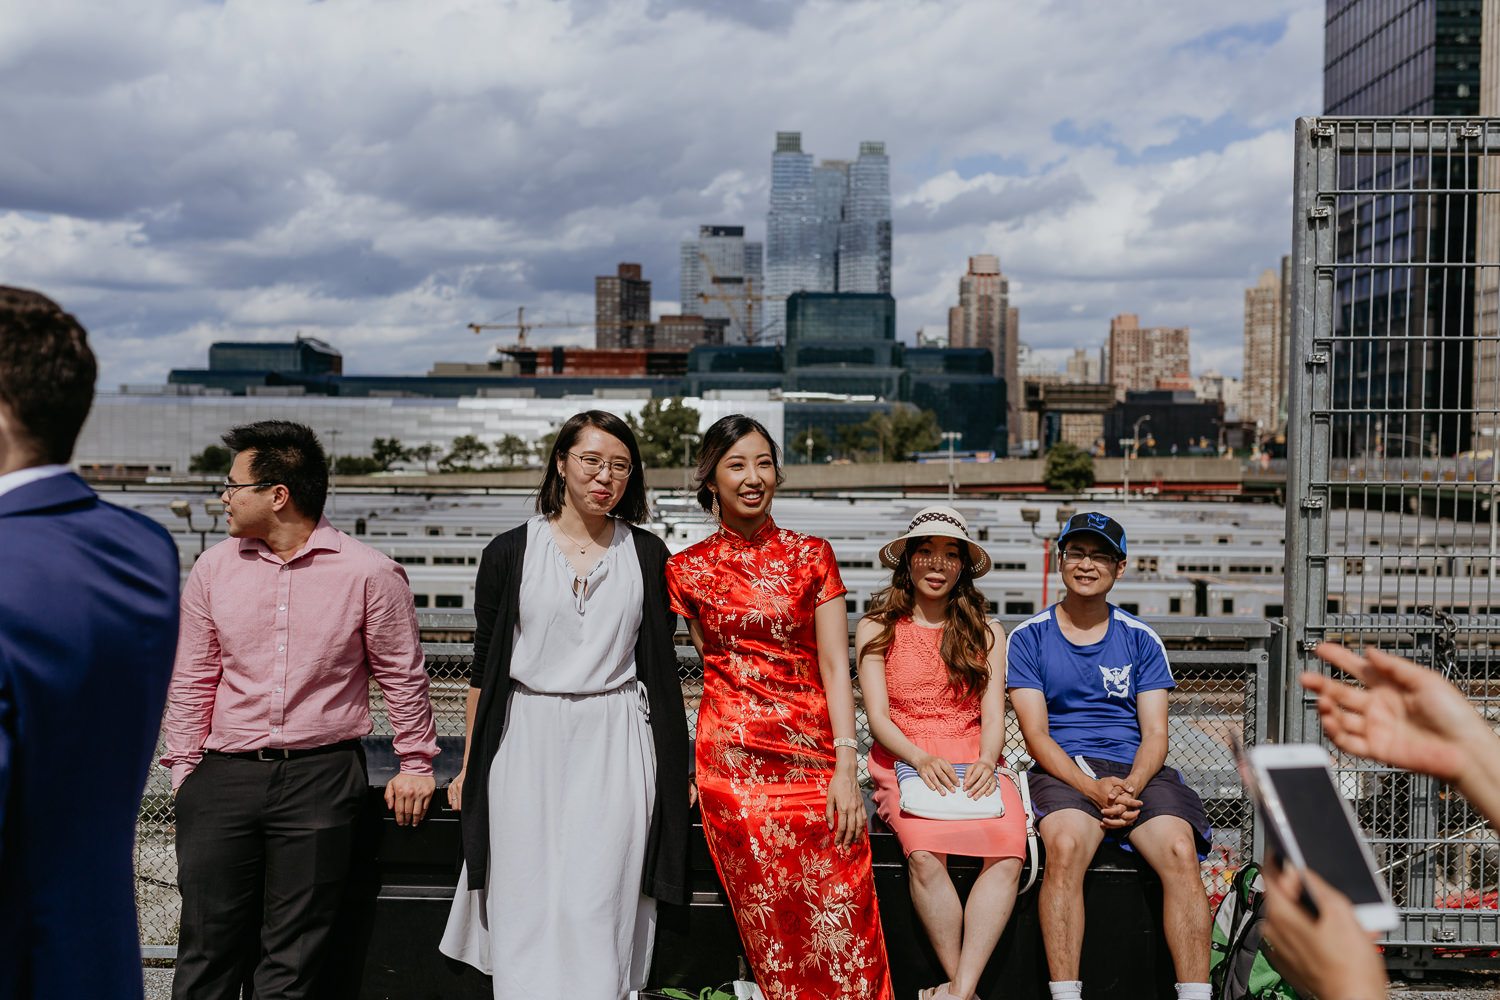 bride in red Chinese dress with her friends sitting with the NYC city views in the background